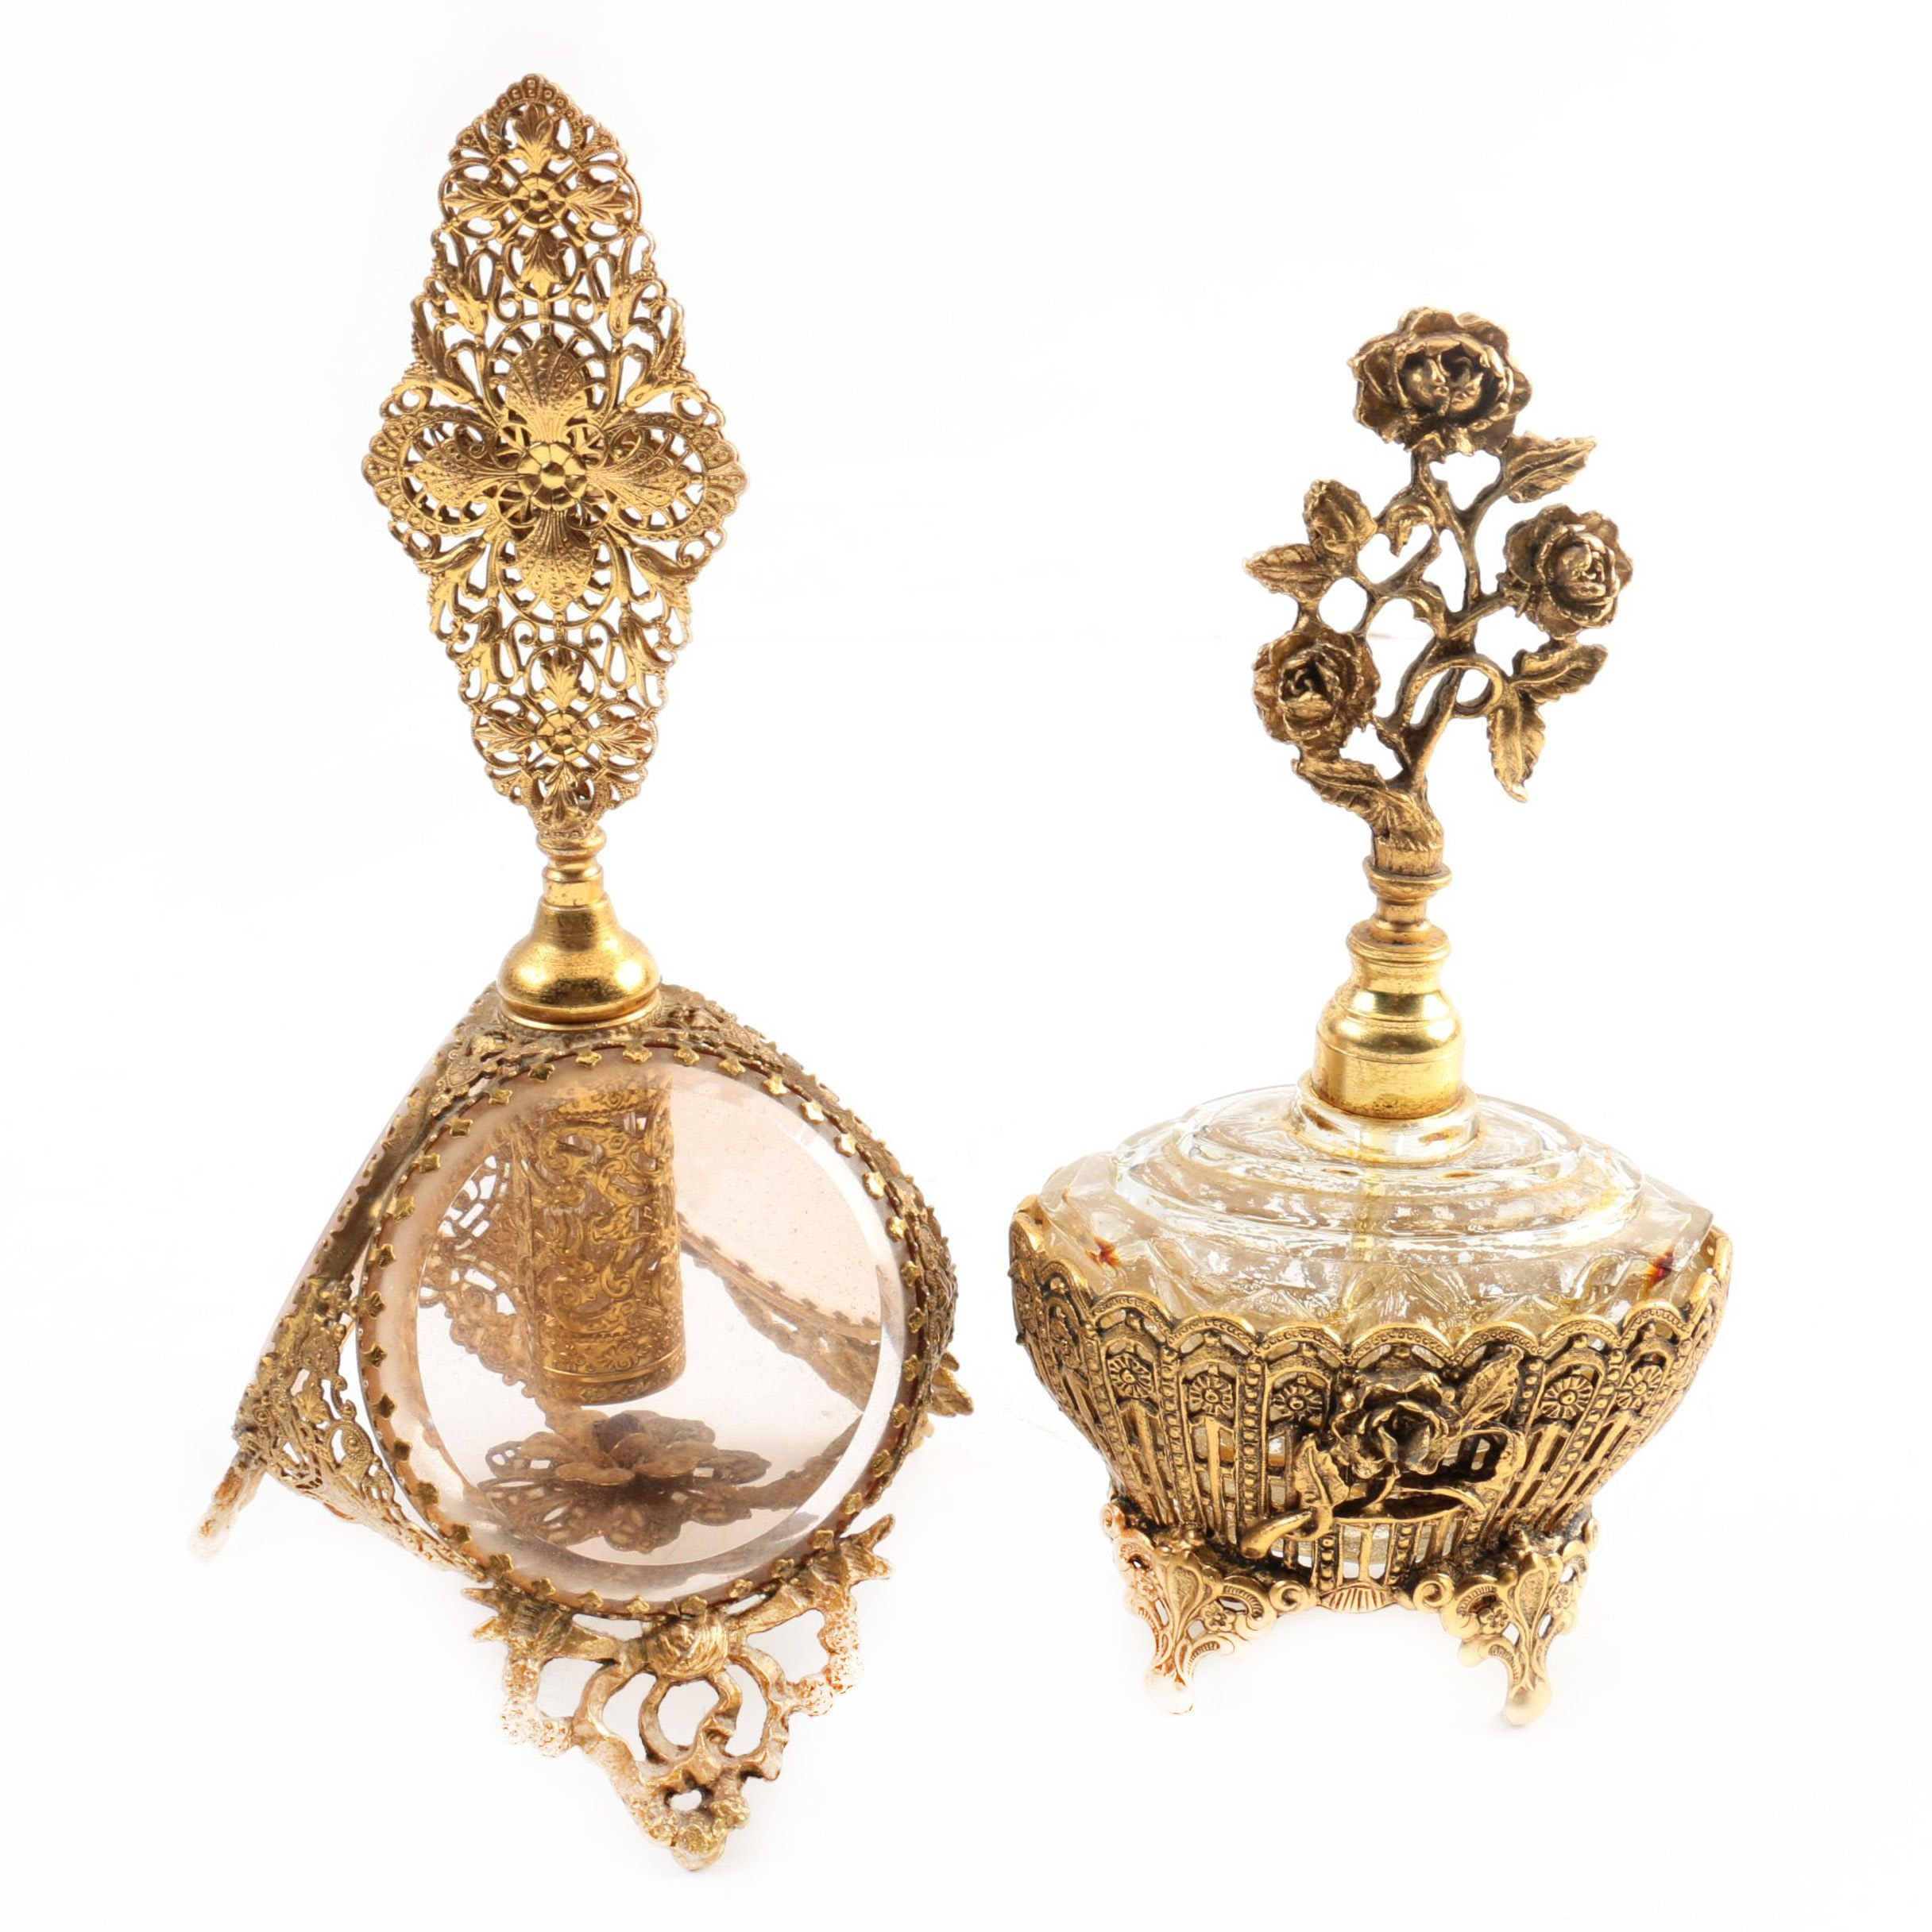 Antique French Ormolu Perfume Bottles